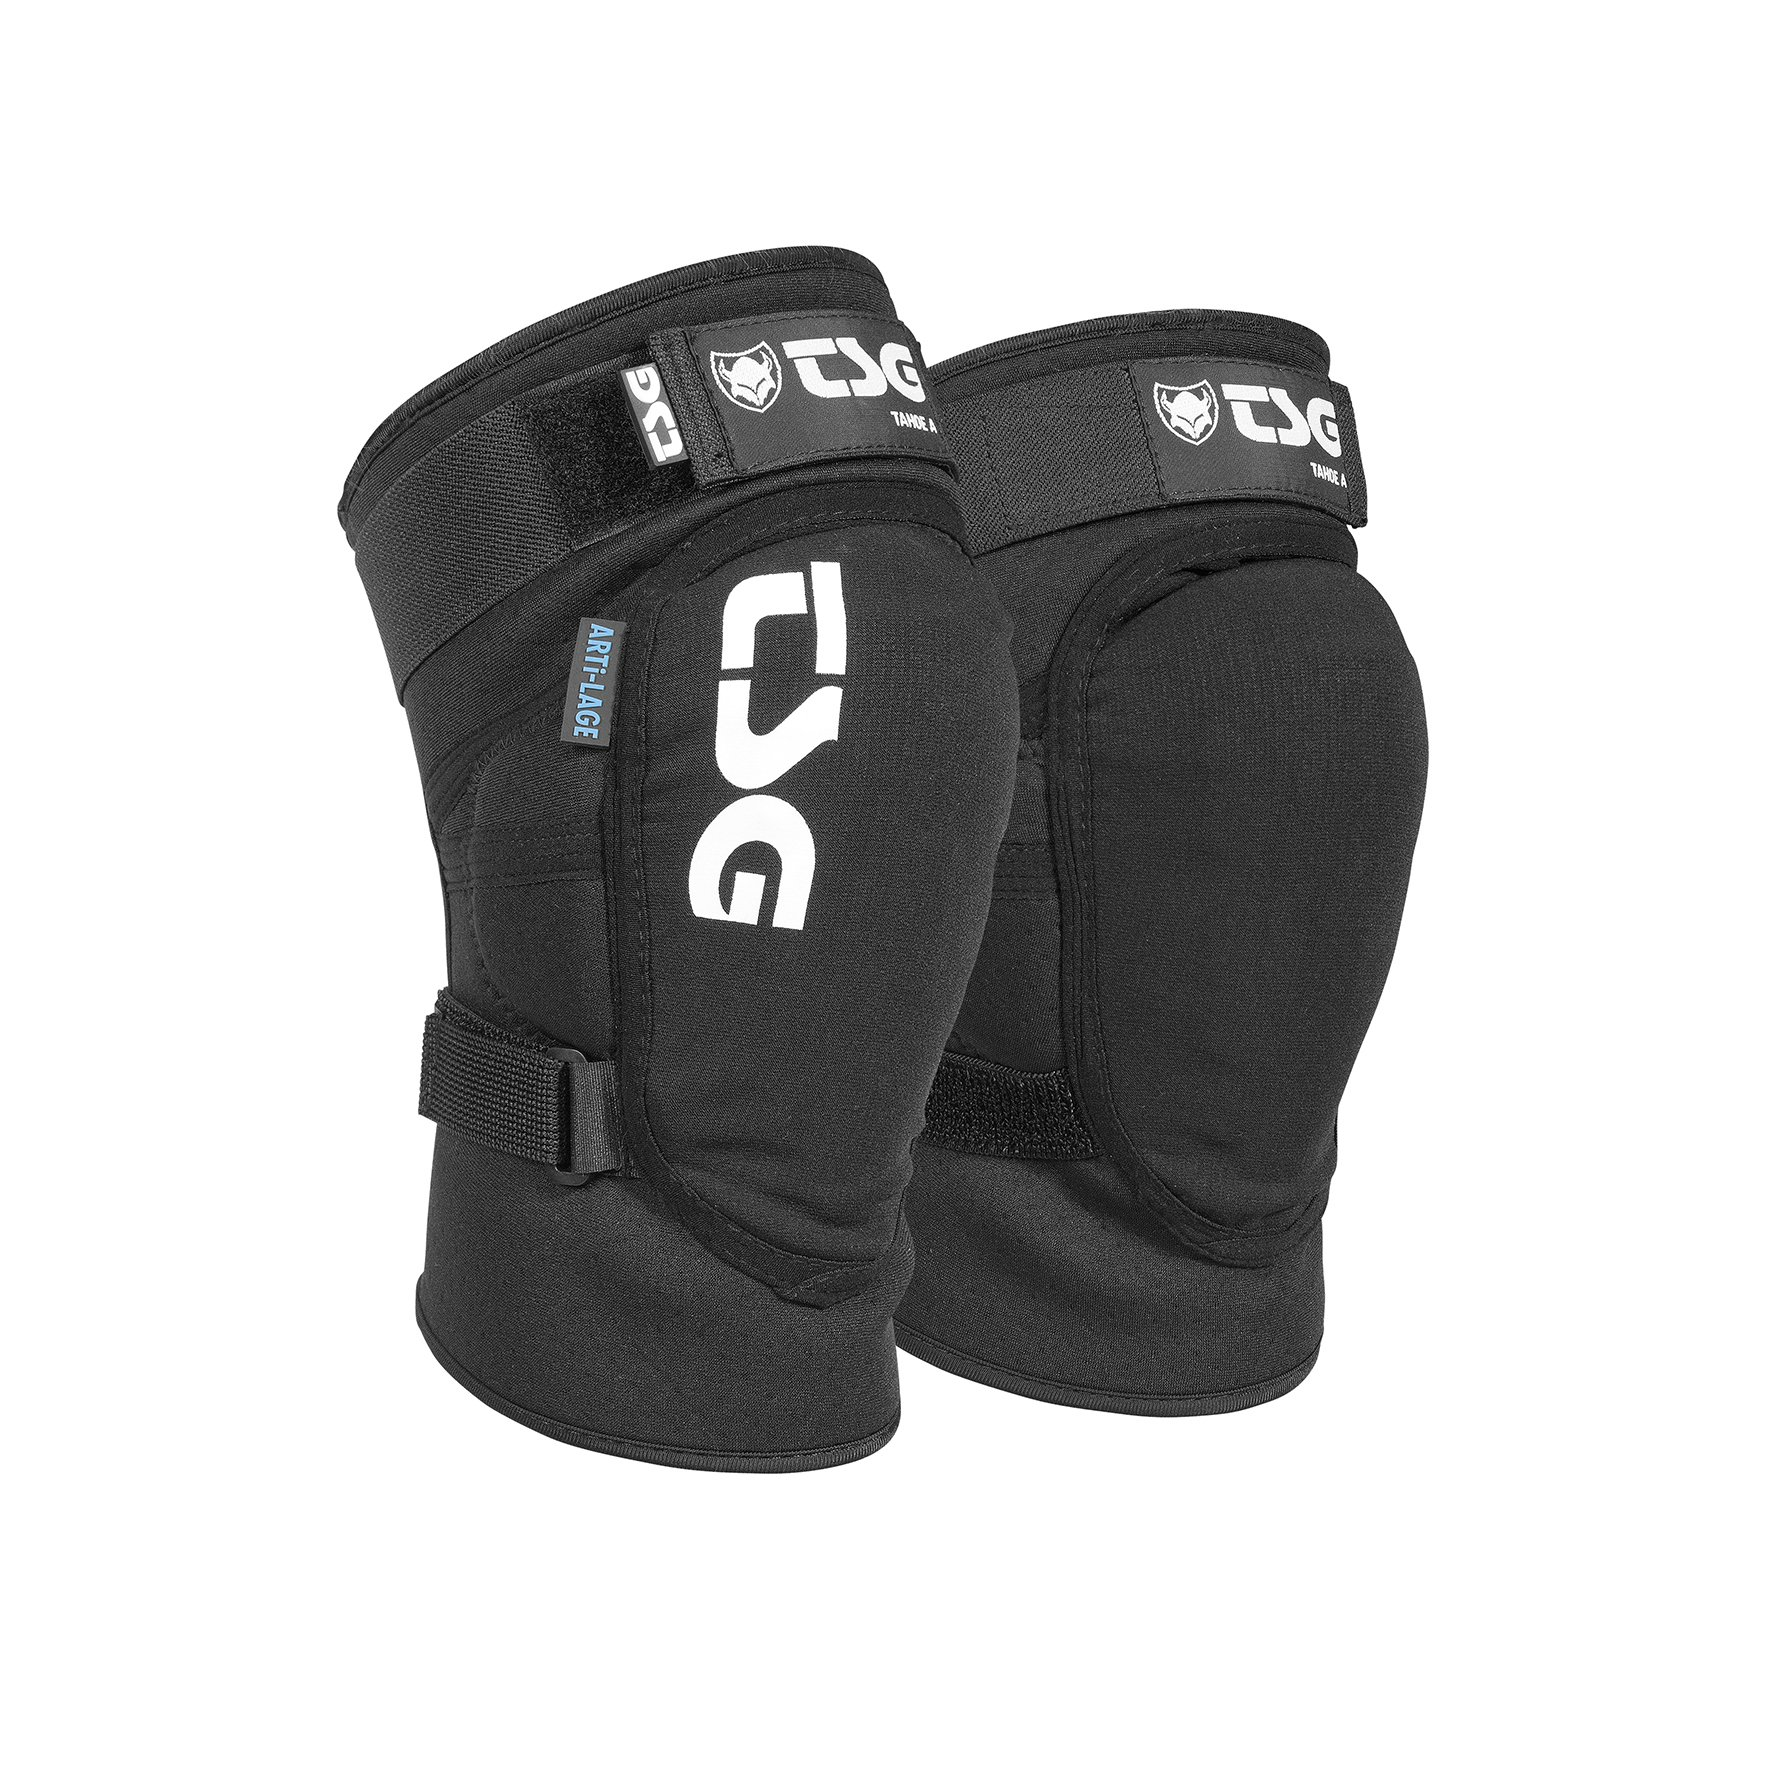 TSG - Kneeguard Tahoe A Pads for Bicycle (Black, M)